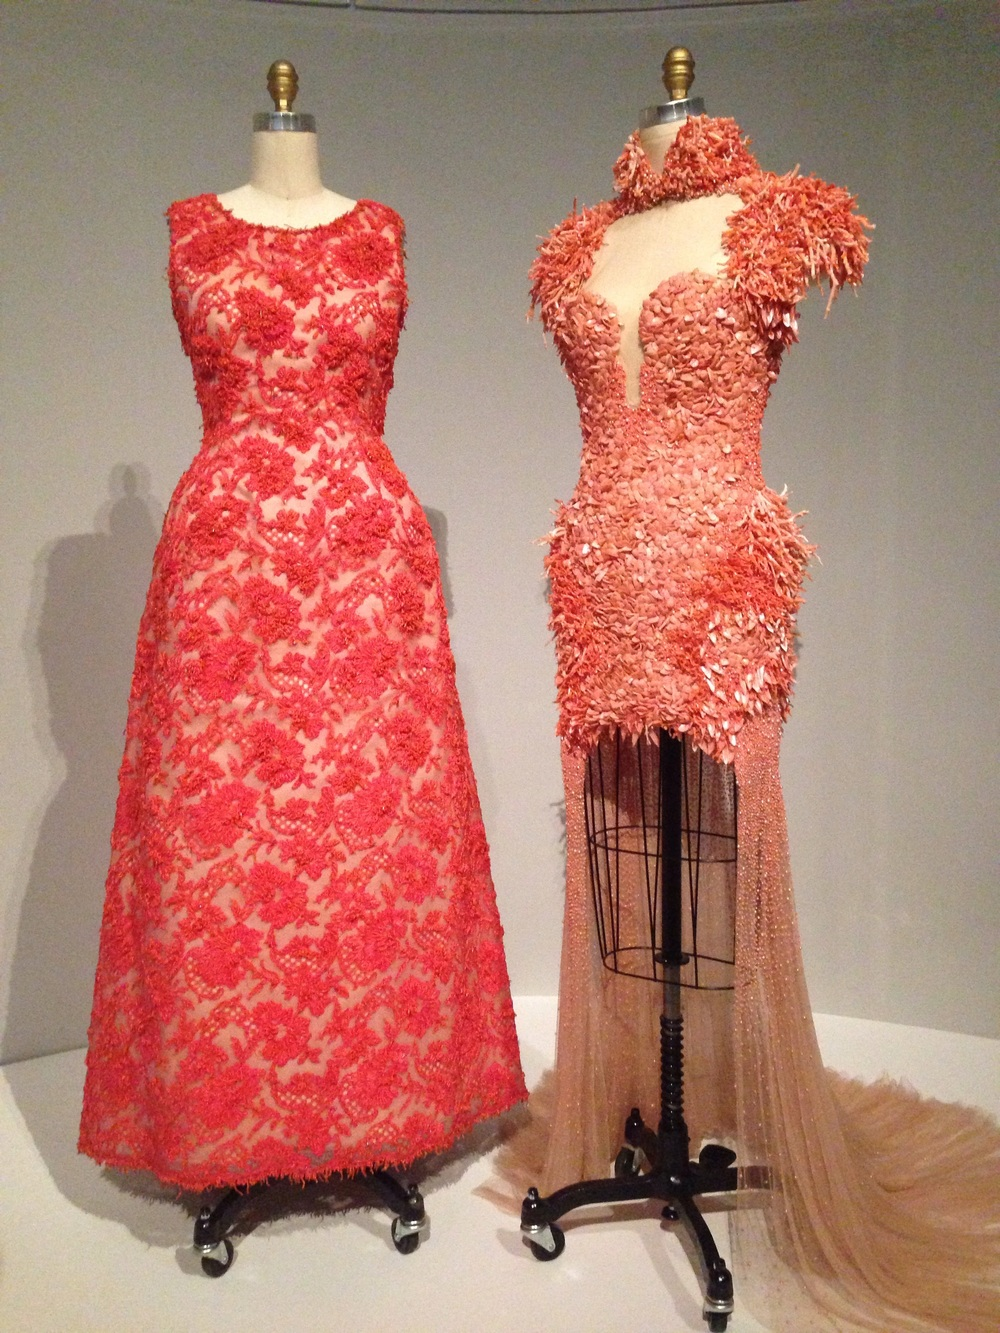 Alexander McQueen-coral, dyed shells, and pearls.  The dress to the right is one of my top three favorites from the show.